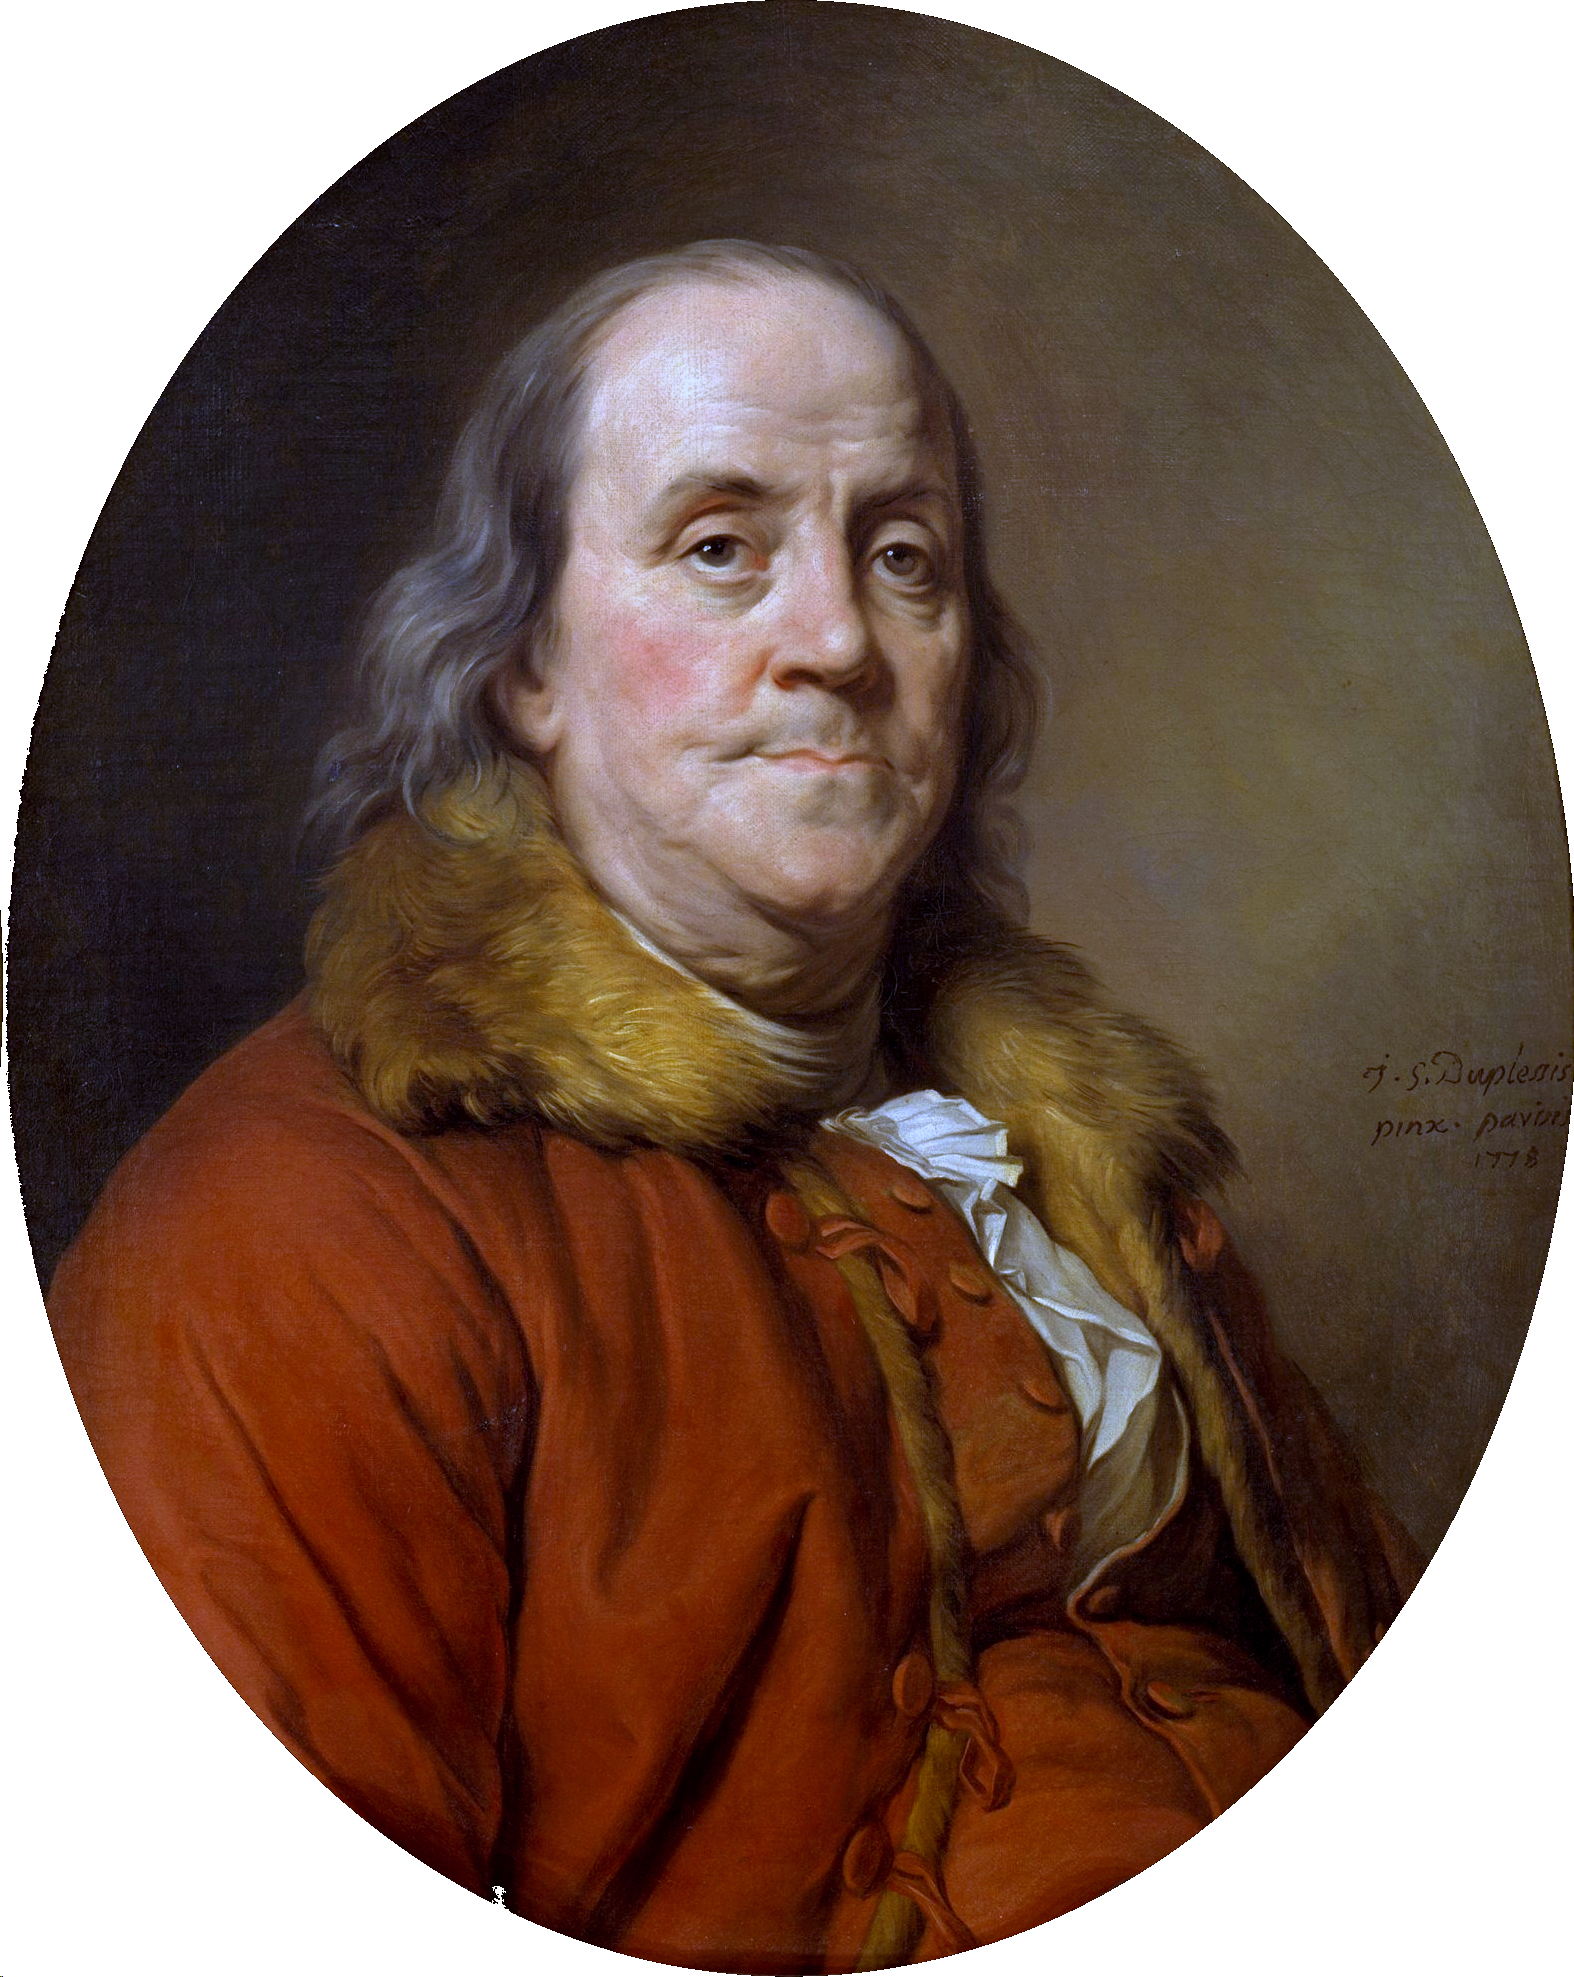 Benjamin Franklin Biography Facts about an Extraordinary